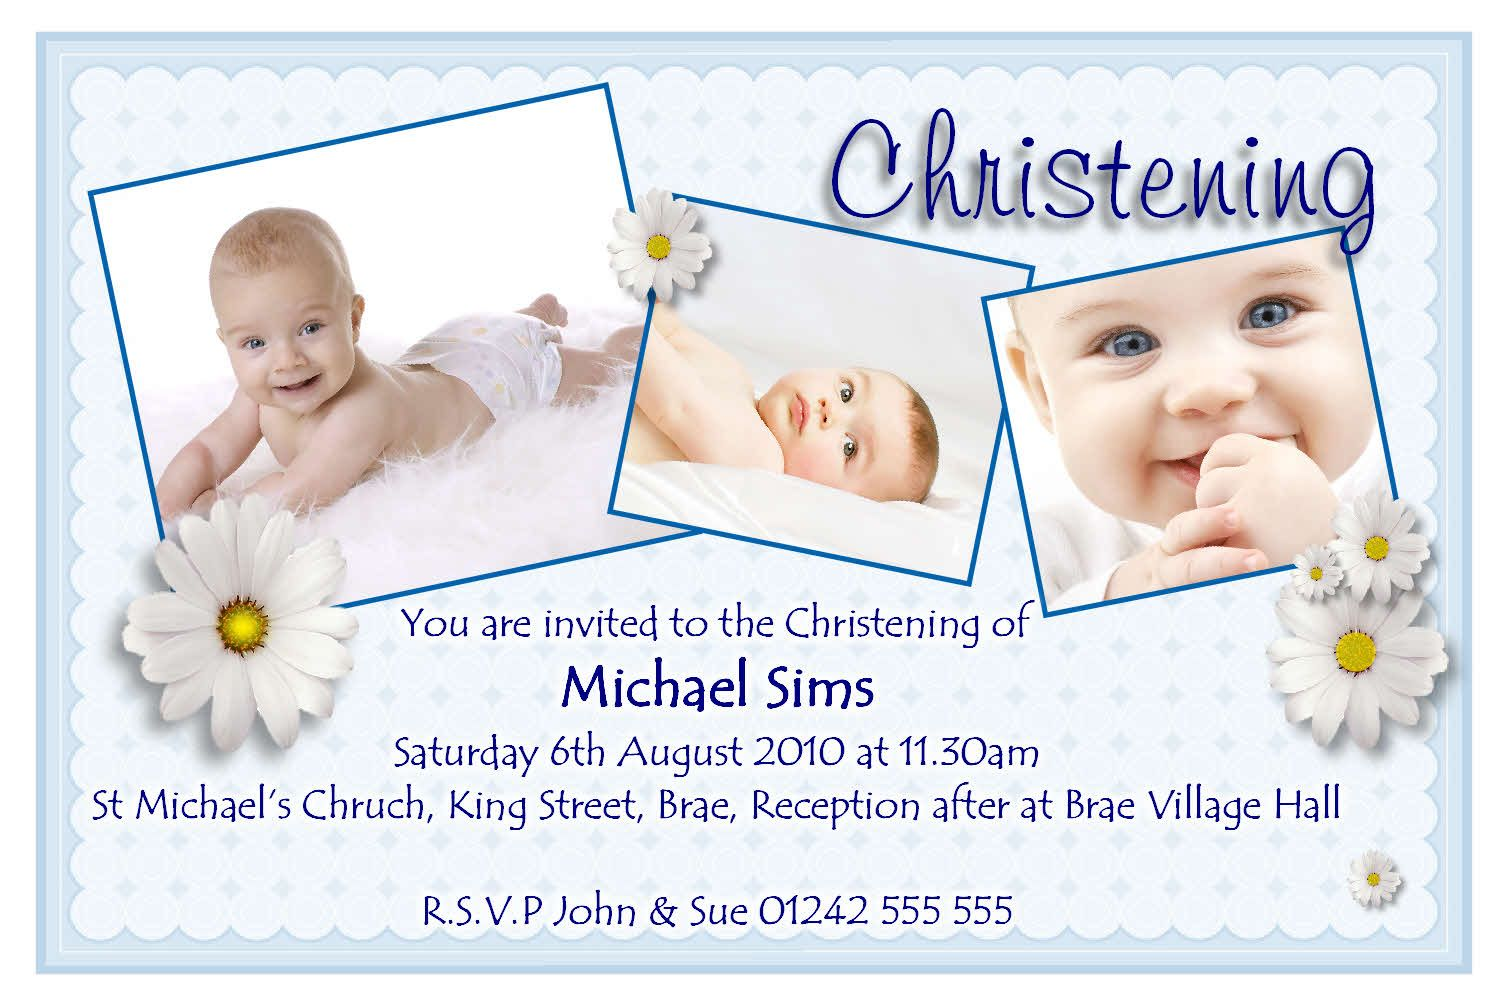 picture invitations personalised christening invitations. Black Bedroom Furniture Sets. Home Design Ideas